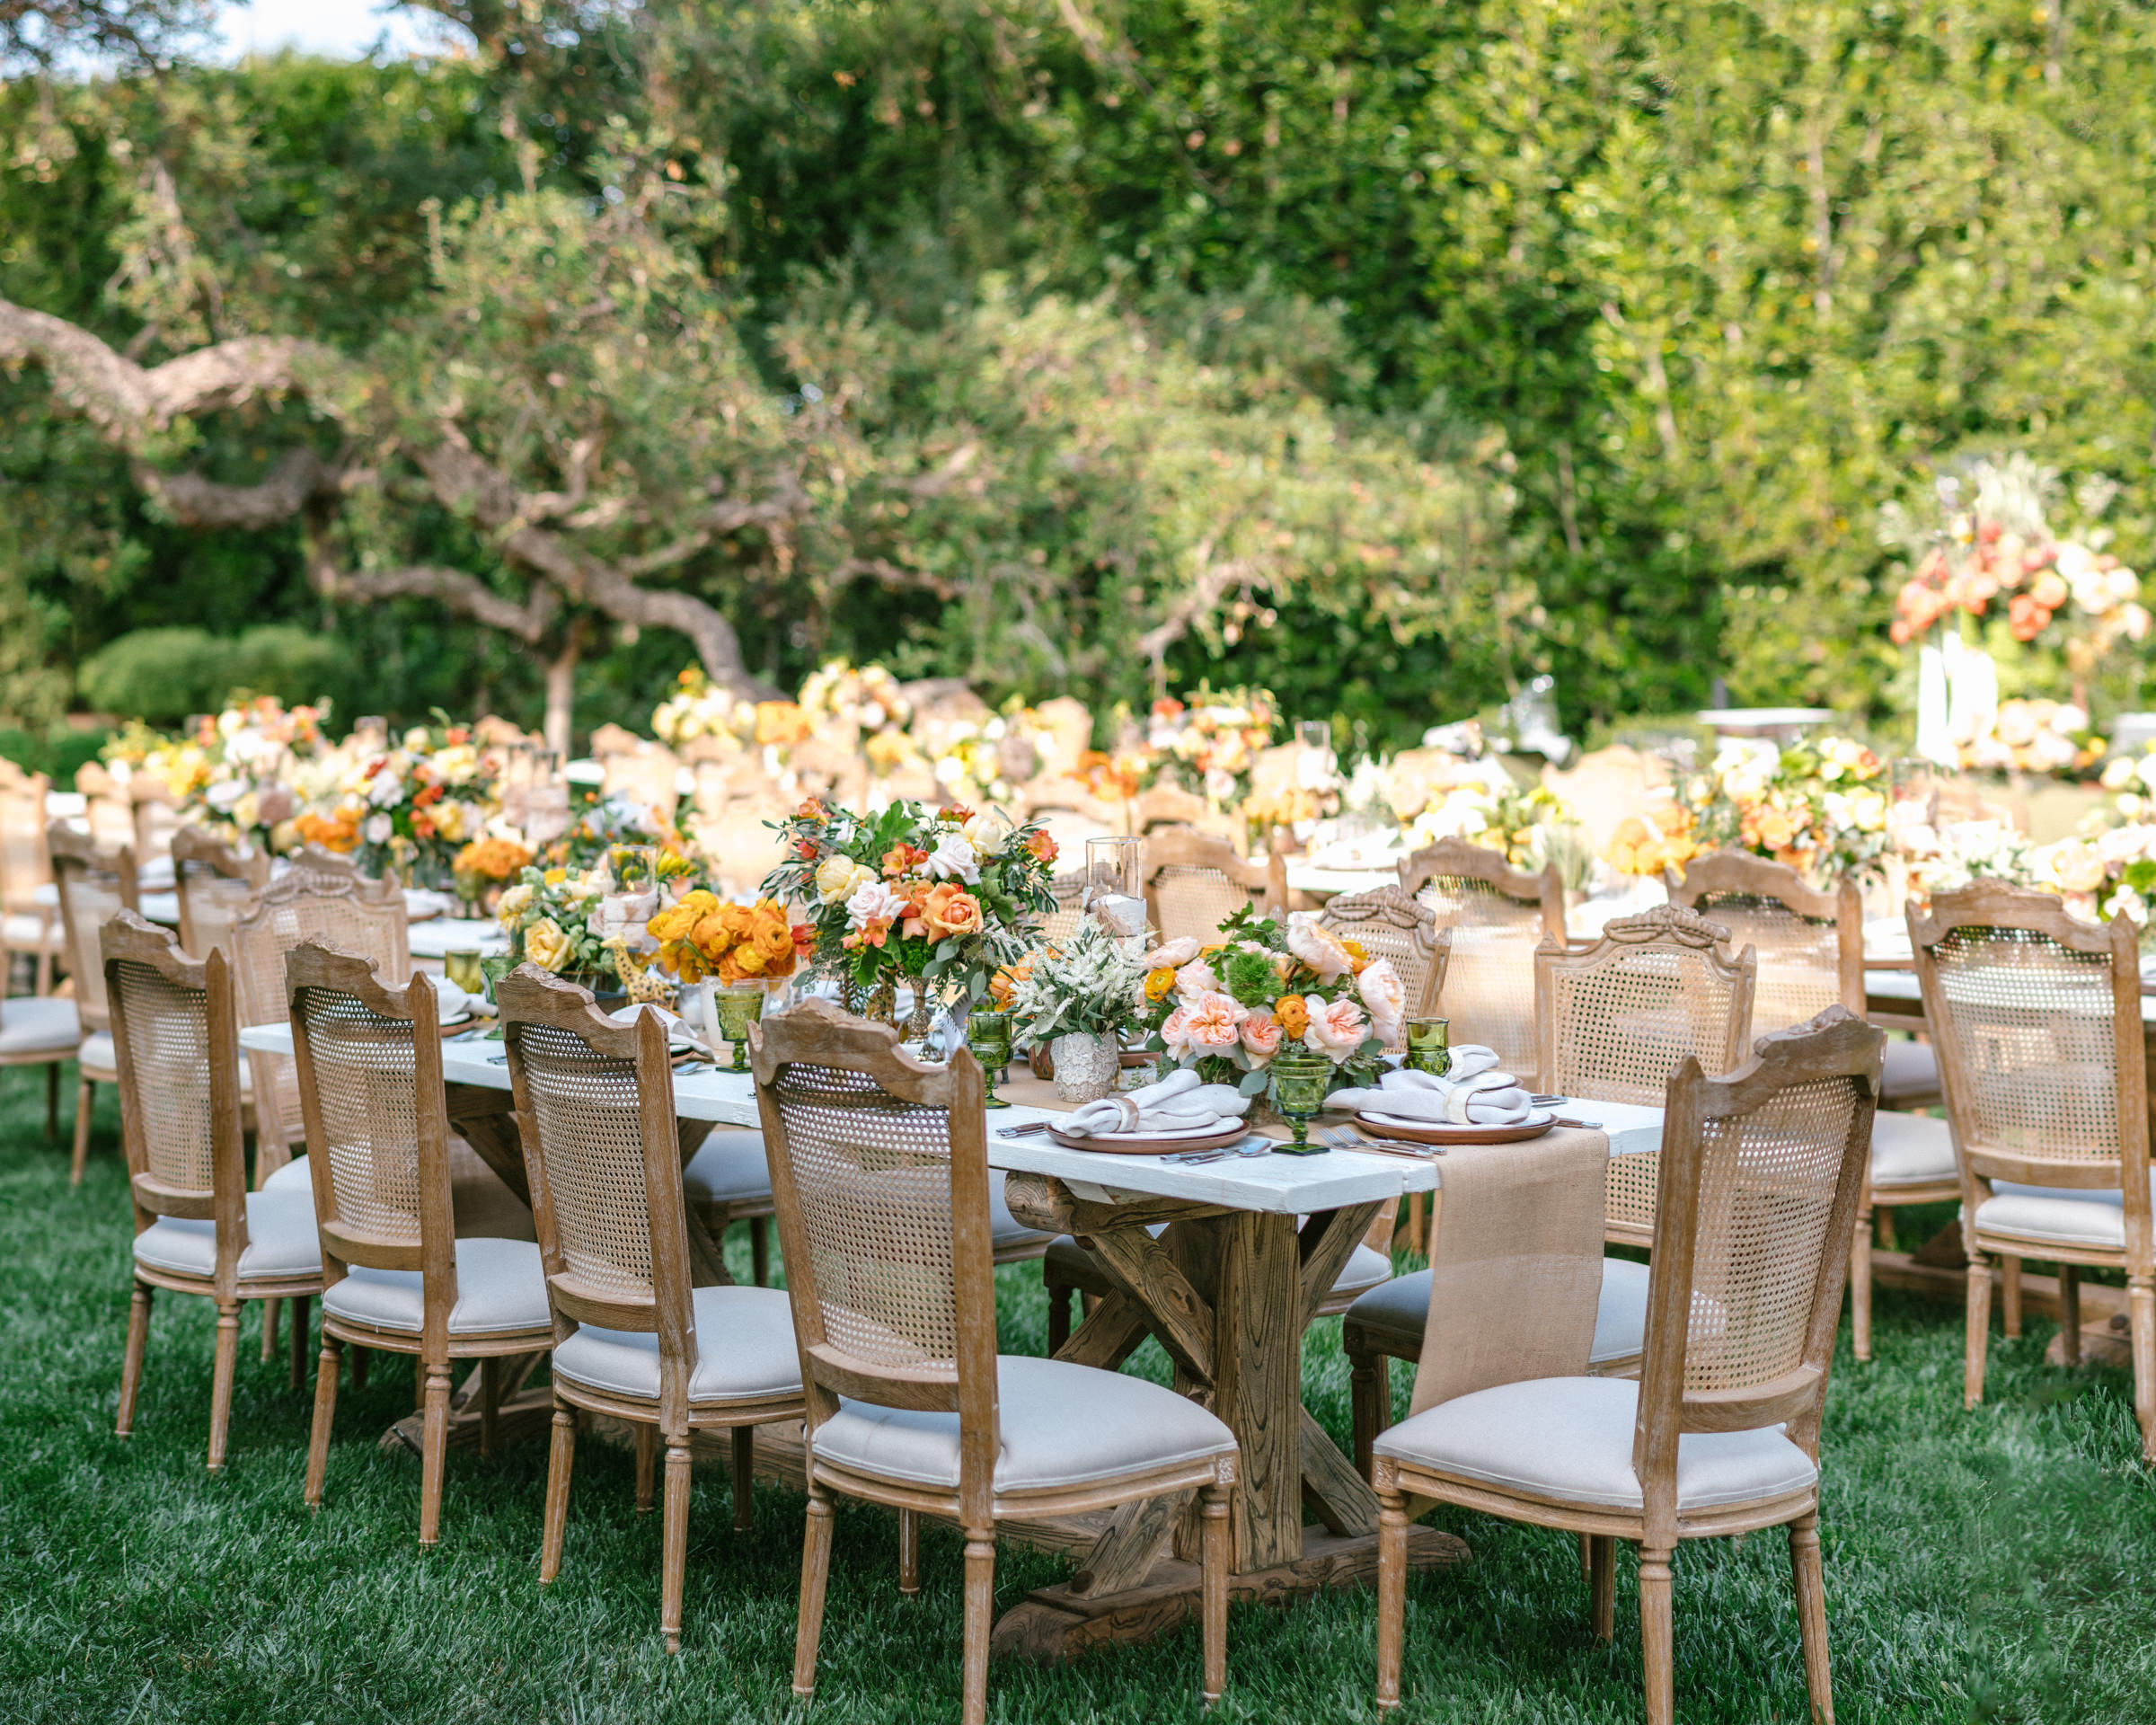 Garden reception tables with abundant floral decor - photo by Amy and Stuart Photography